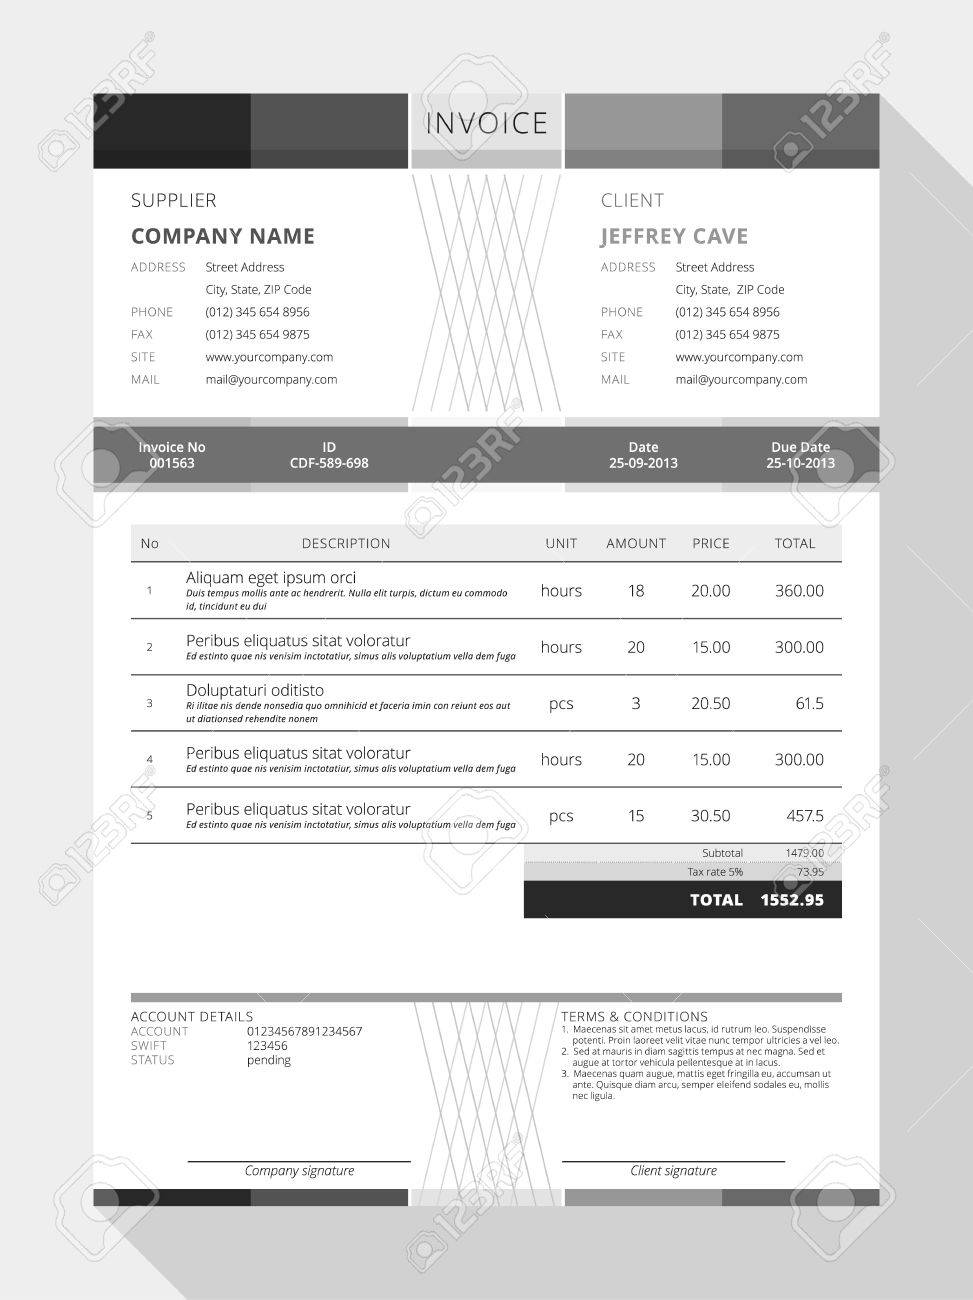 Maidofhonortoastus  Wonderful Design An Invoice  Professional Graphic Design Invoice  With Fascinating Vector Customizable Invoice Form Template Design Vector   Design An Invoice With Attractive  Honda Civic Invoice Price Also Free Invoicing Templates In Addition Photographer Invoice Template And Service Invoice Template Pdf As Well As Pro Forma Invoices Additionally Rental Invoice Template Word From Happytomco With Maidofhonortoastus  Fascinating Design An Invoice  Professional Graphic Design Invoice  With Attractive Vector Customizable Invoice Form Template Design Vector   Design An Invoice And Wonderful  Honda Civic Invoice Price Also Free Invoicing Templates In Addition Photographer Invoice Template From Happytomco